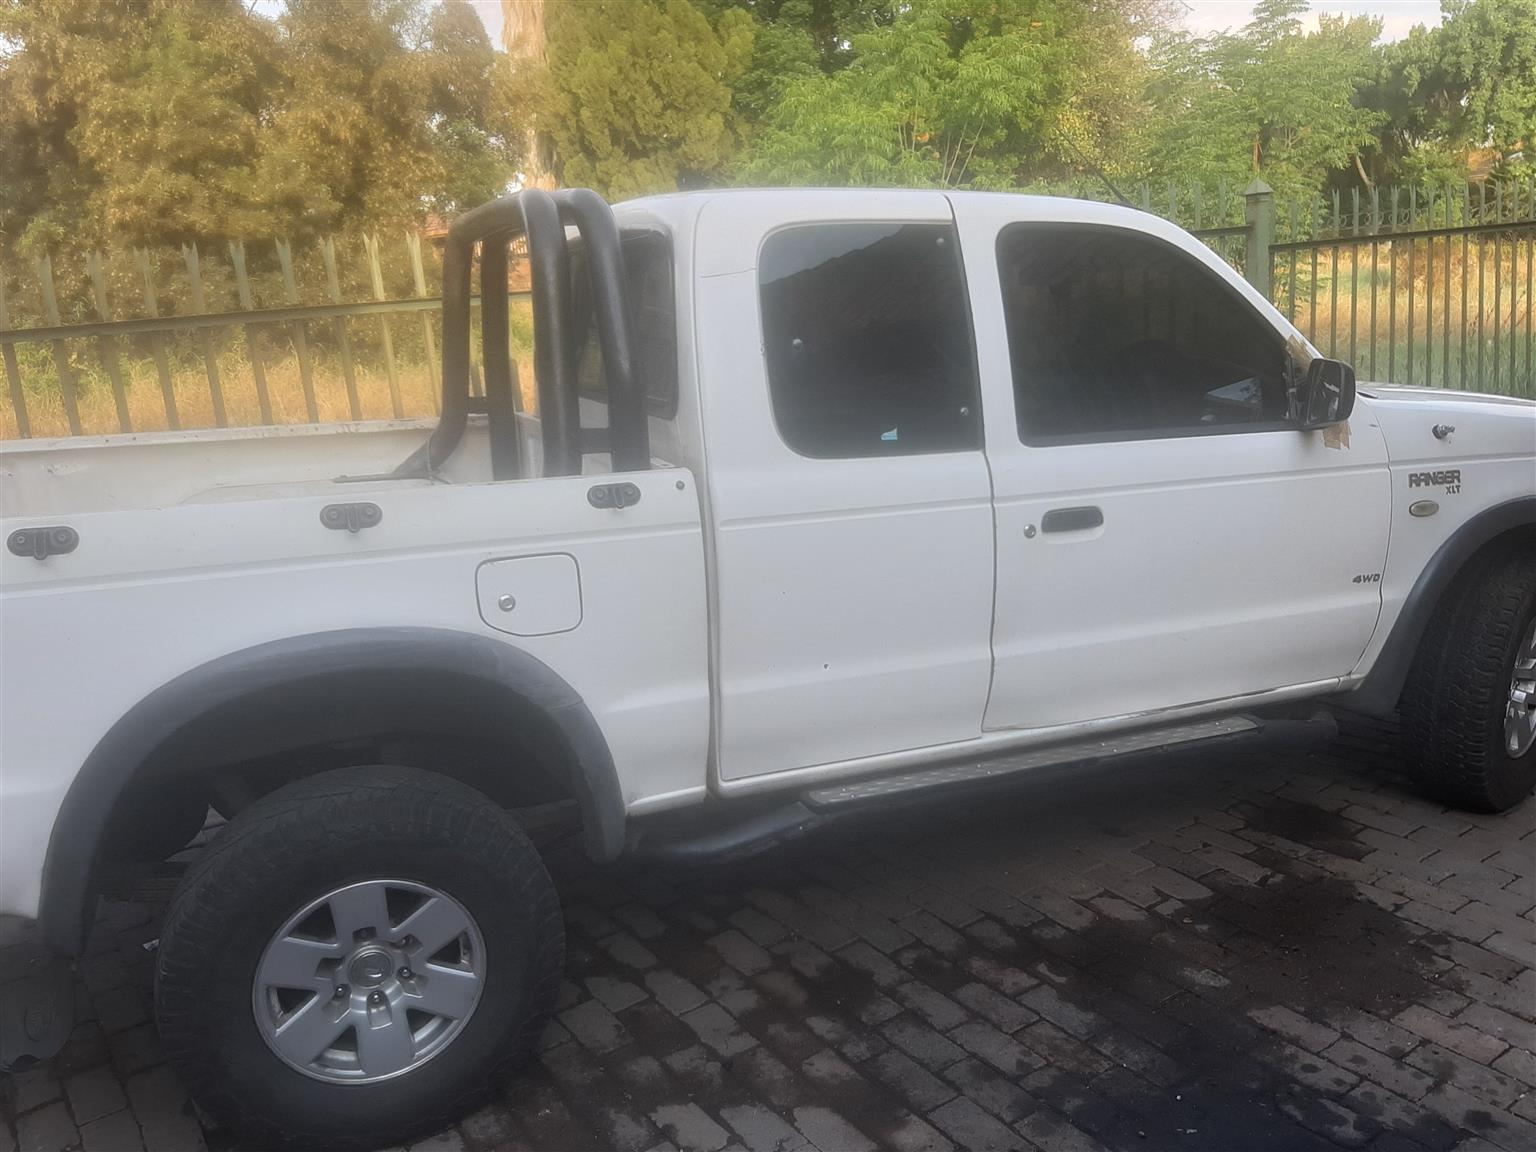 2006Ford Ranger 2500 in good condition and in a daily use